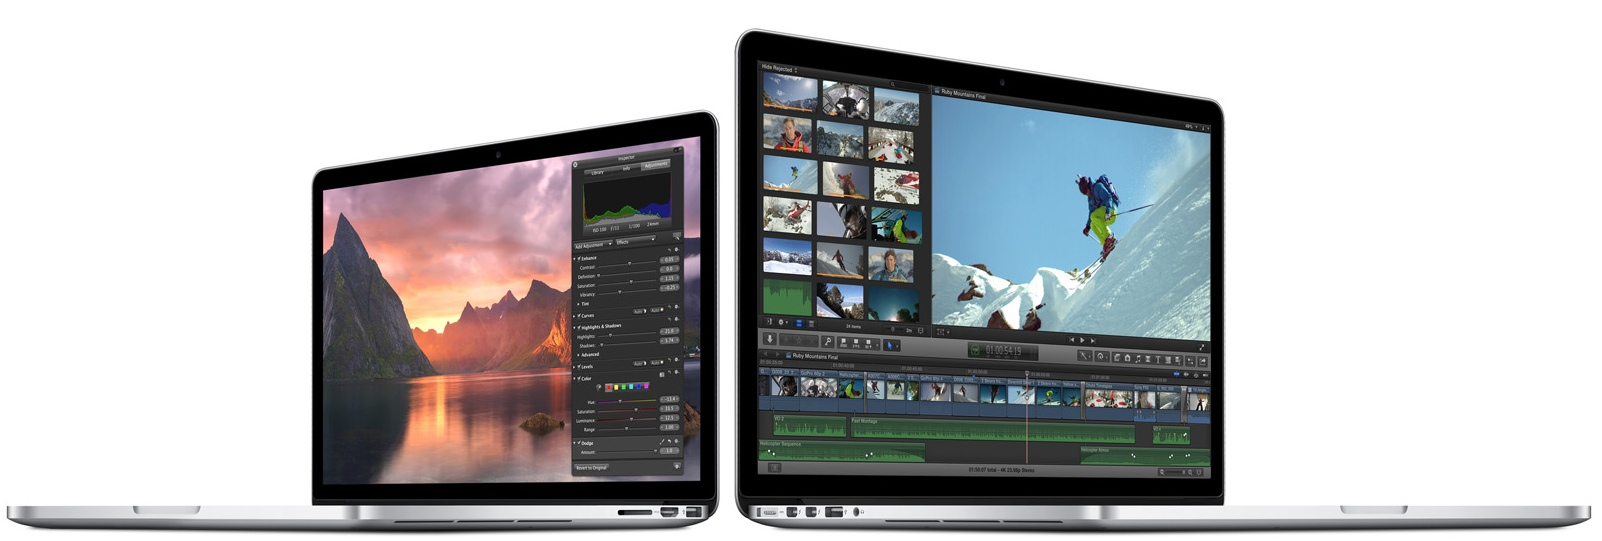 Best Laptop 2014? MacBook Pro and Everything Else